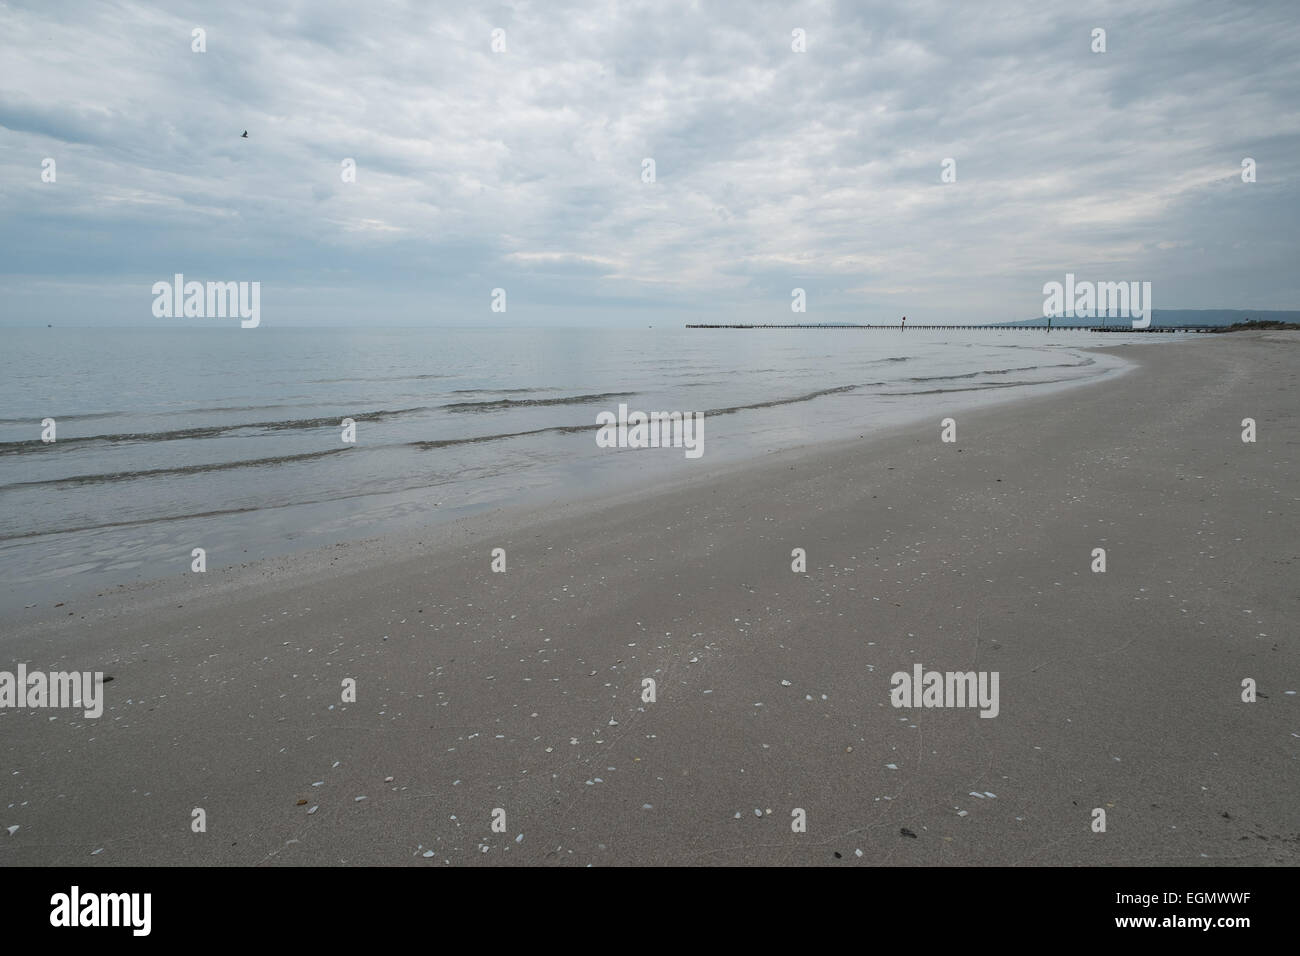 Empty gloomy beach on an overcast day. - Stock Image